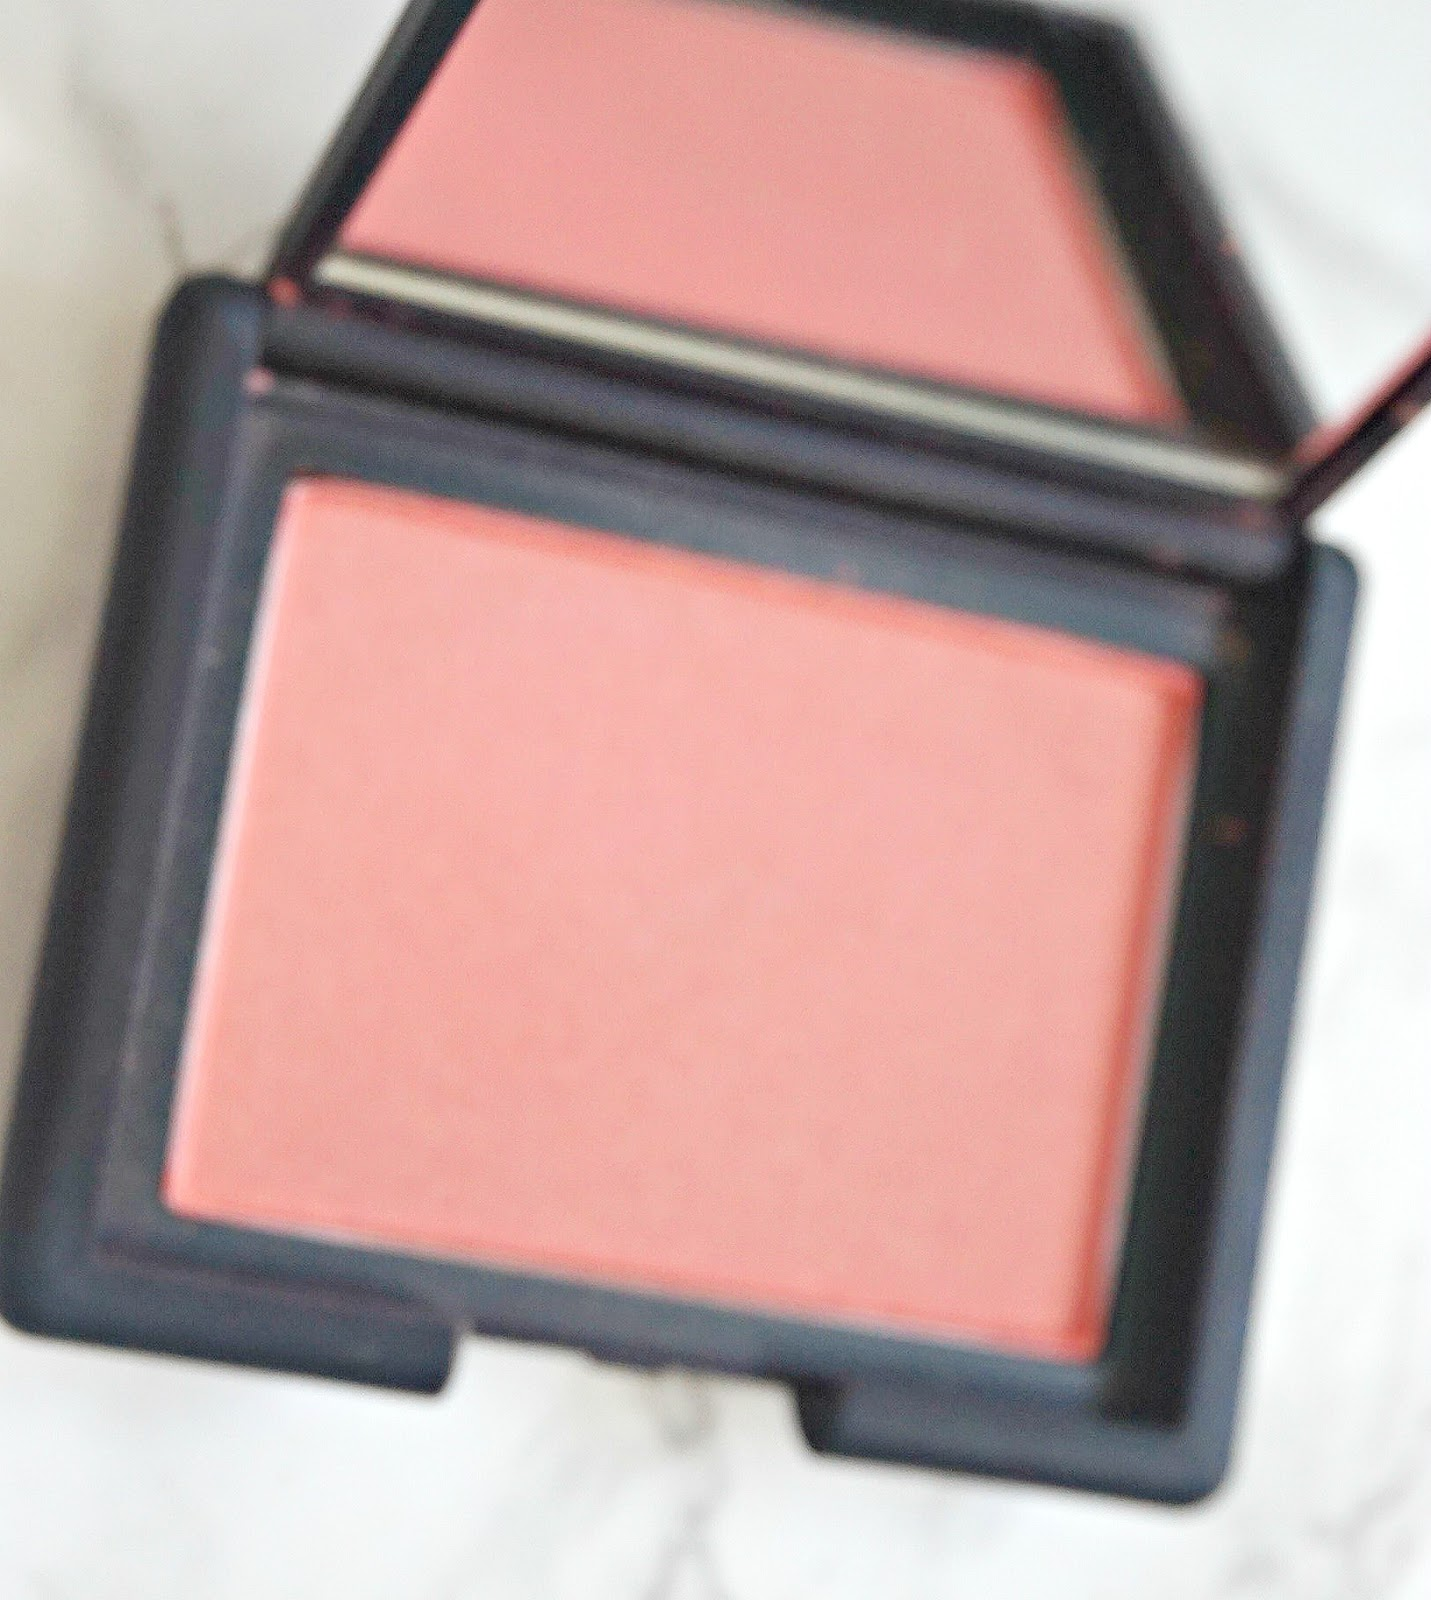 The Coral Peach Blush Edit Featuring Nars Urban Decay Benefit Mac On Original Torrid A Vert Warm Shade That Isnt Matte But Only Has Tiniest Hint Of Shimmer Works Best Me When I Have Fake Tan Used To